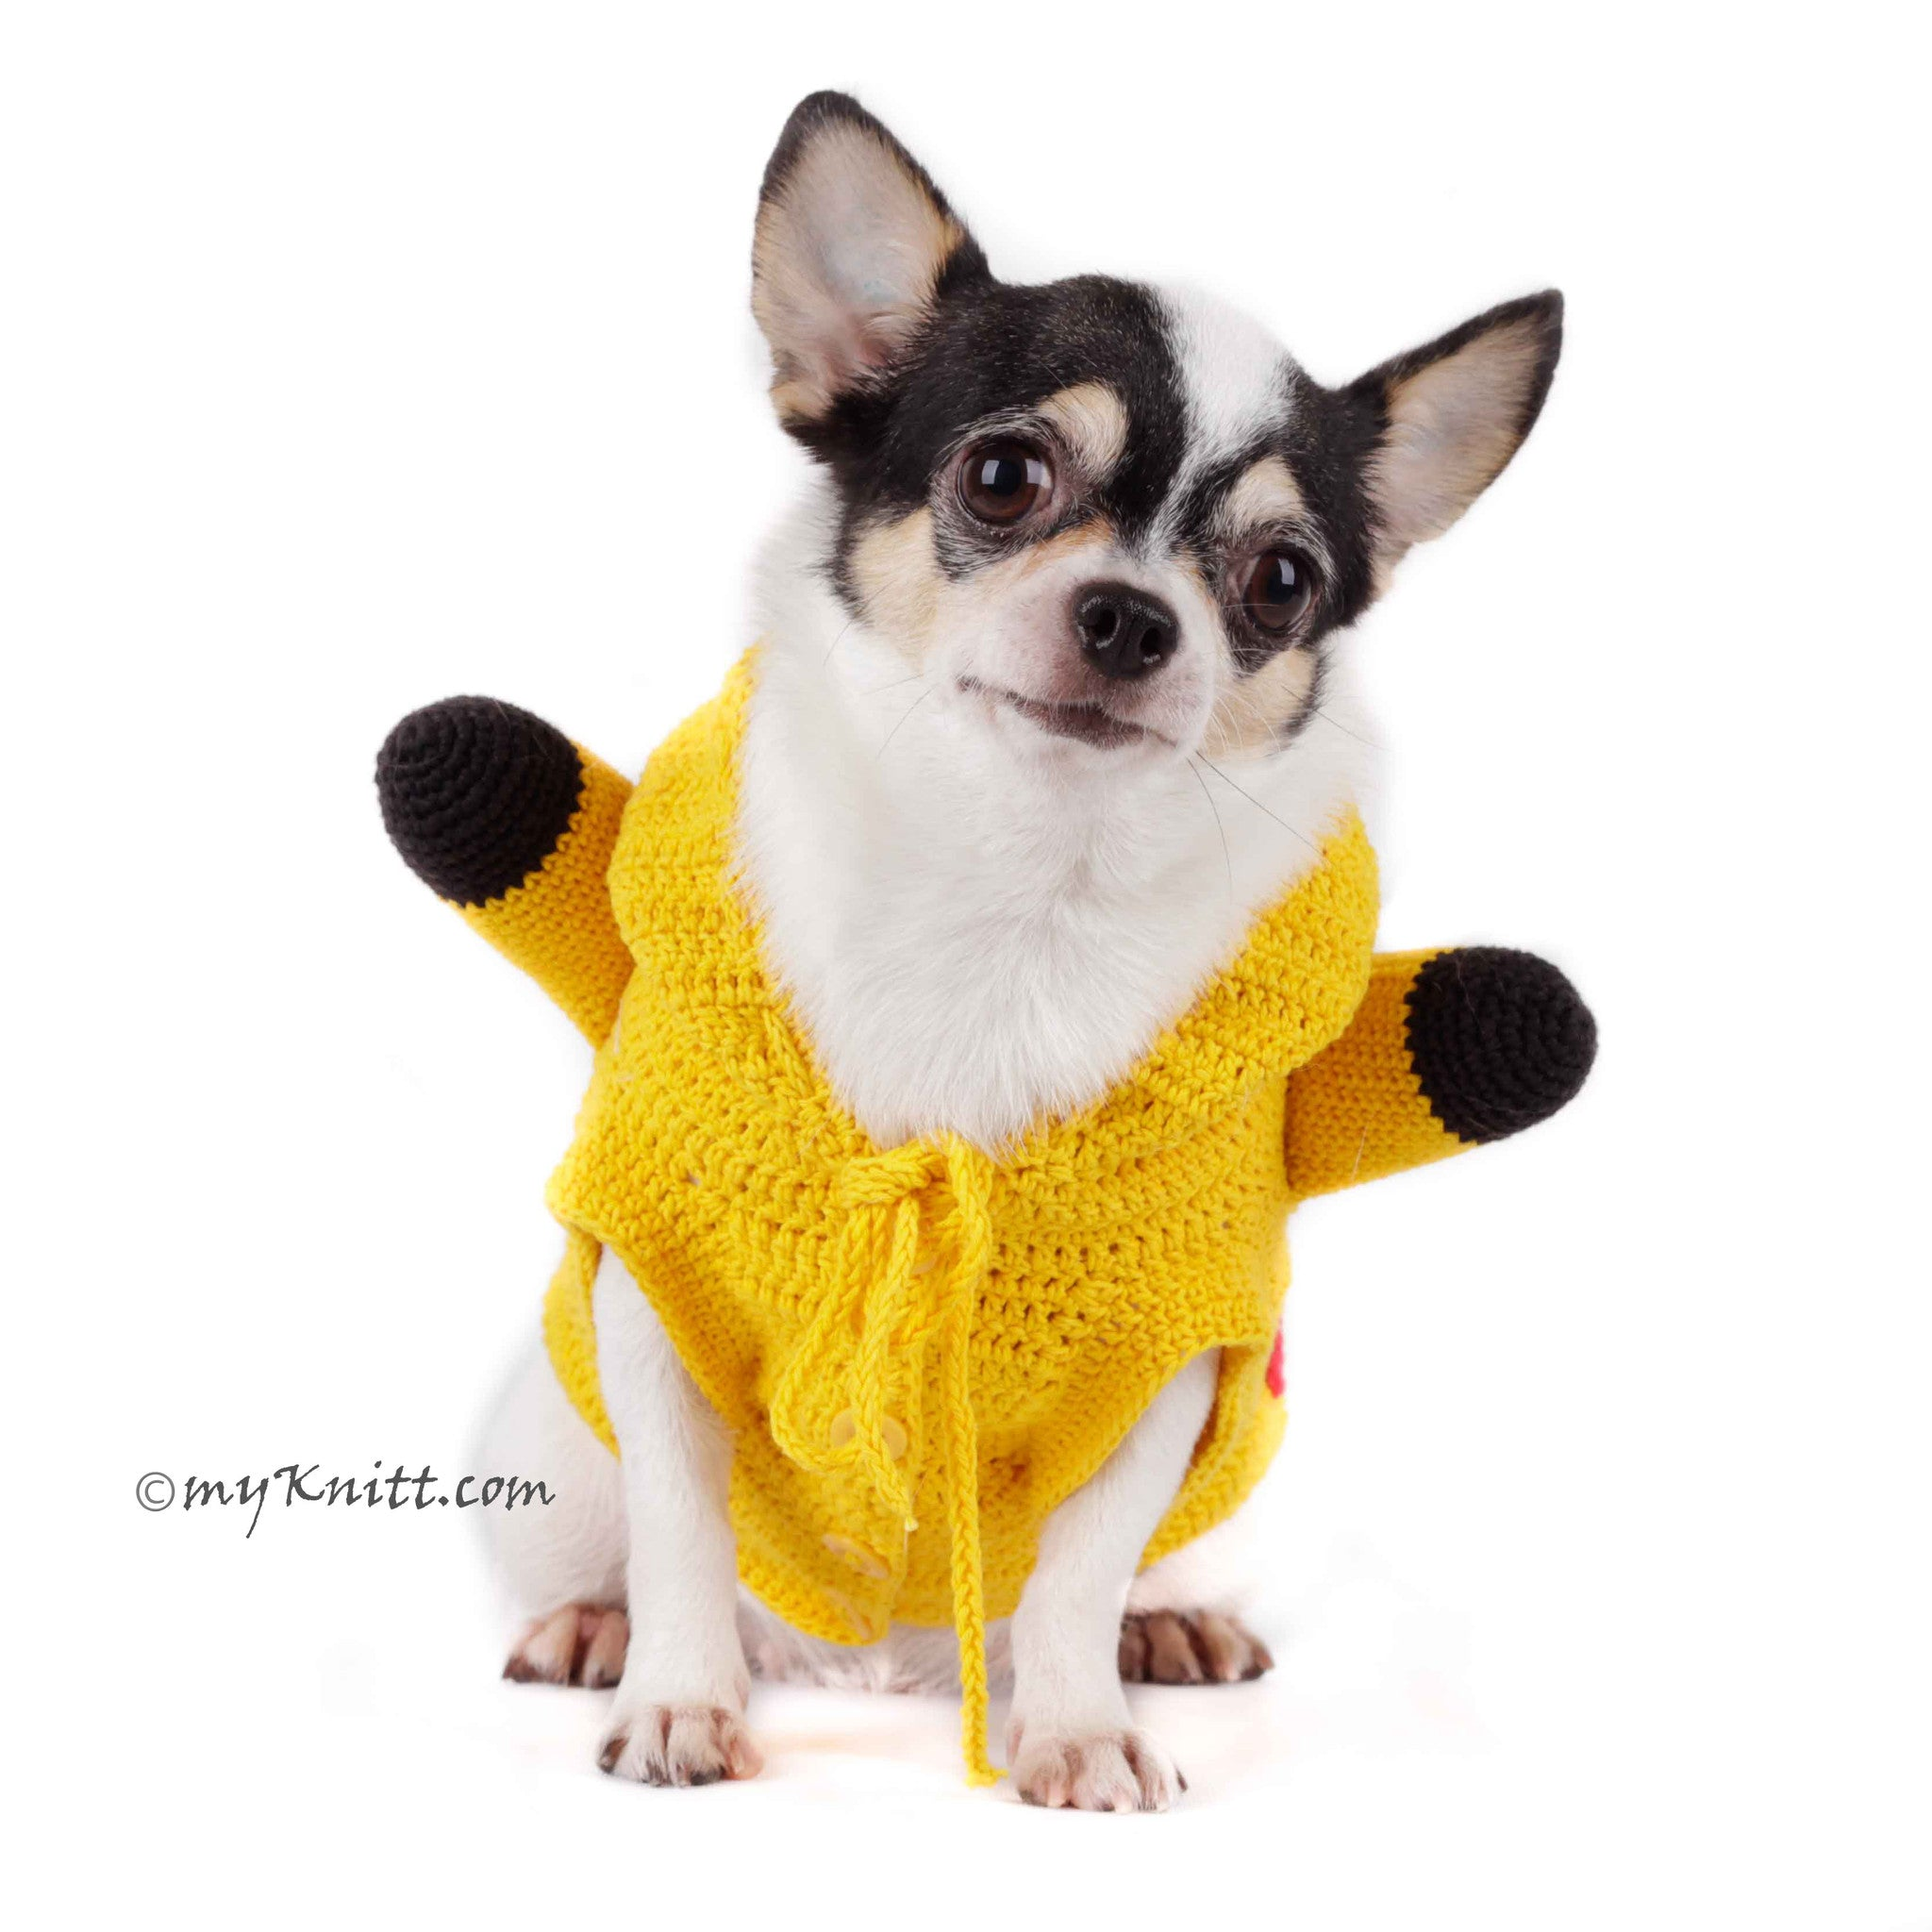 Pikachu Dog Hoodie Pokemon Go Pet Costume for Halloween DK784 by ...